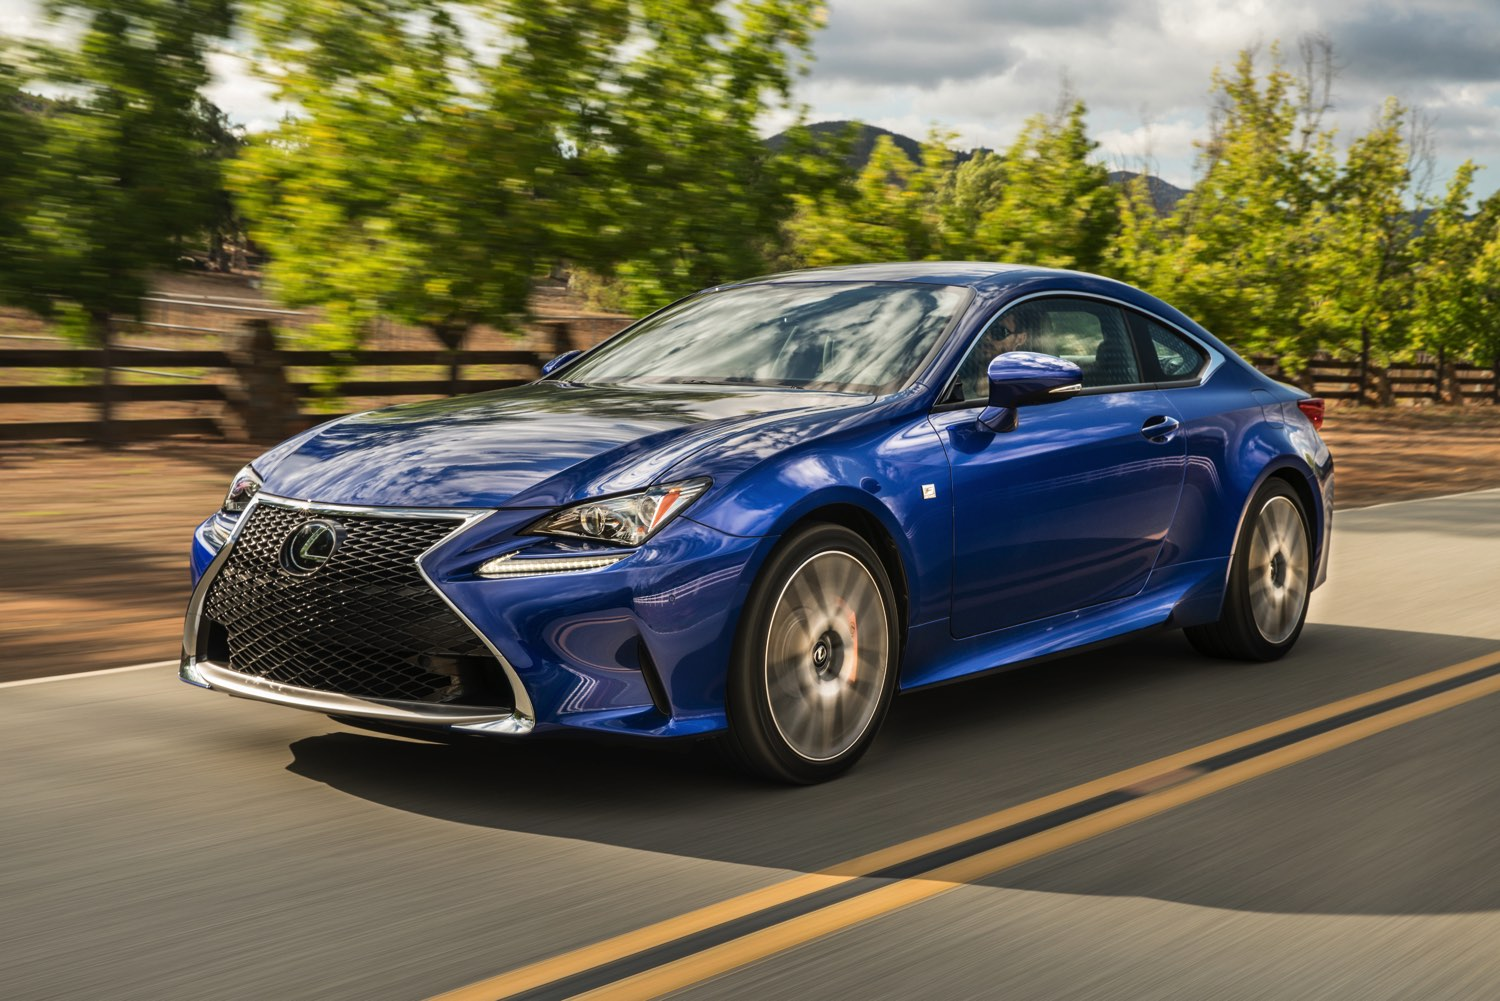 The 2016 Lexus RC 200t Sport Coupe